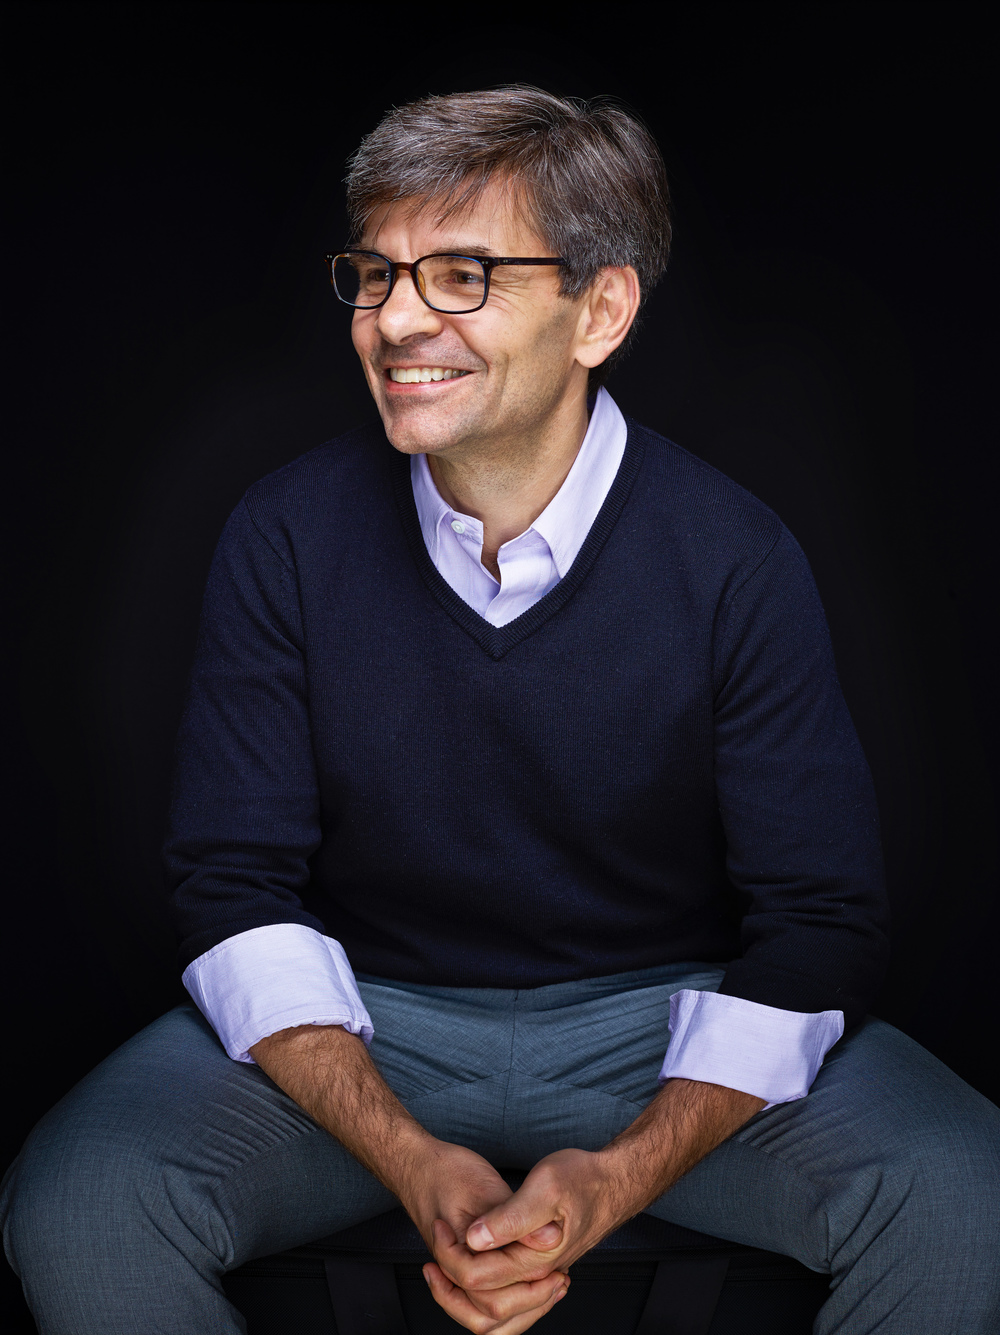 george-stephanopoulos.jpg